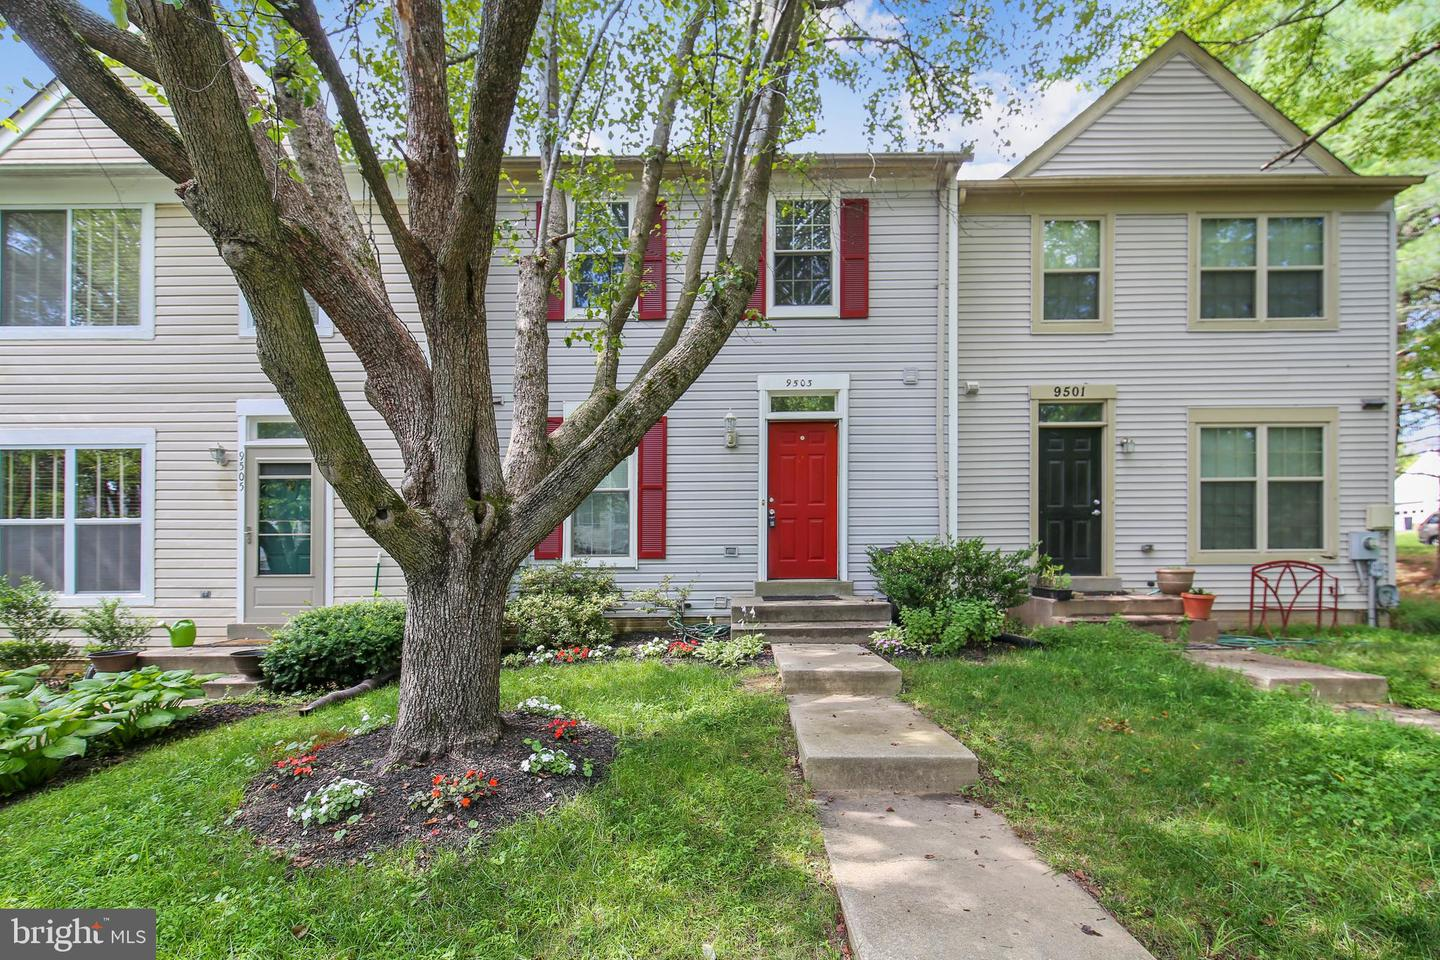 9503 WHITE PILLAR TER, GAITHERSBURG, Maryland 20882, 3 Bedrooms Bedrooms, ,3 BathroomsBathrooms,Townhouse,For Sale,9503 WHITE PILLAR TER,MDMC714042